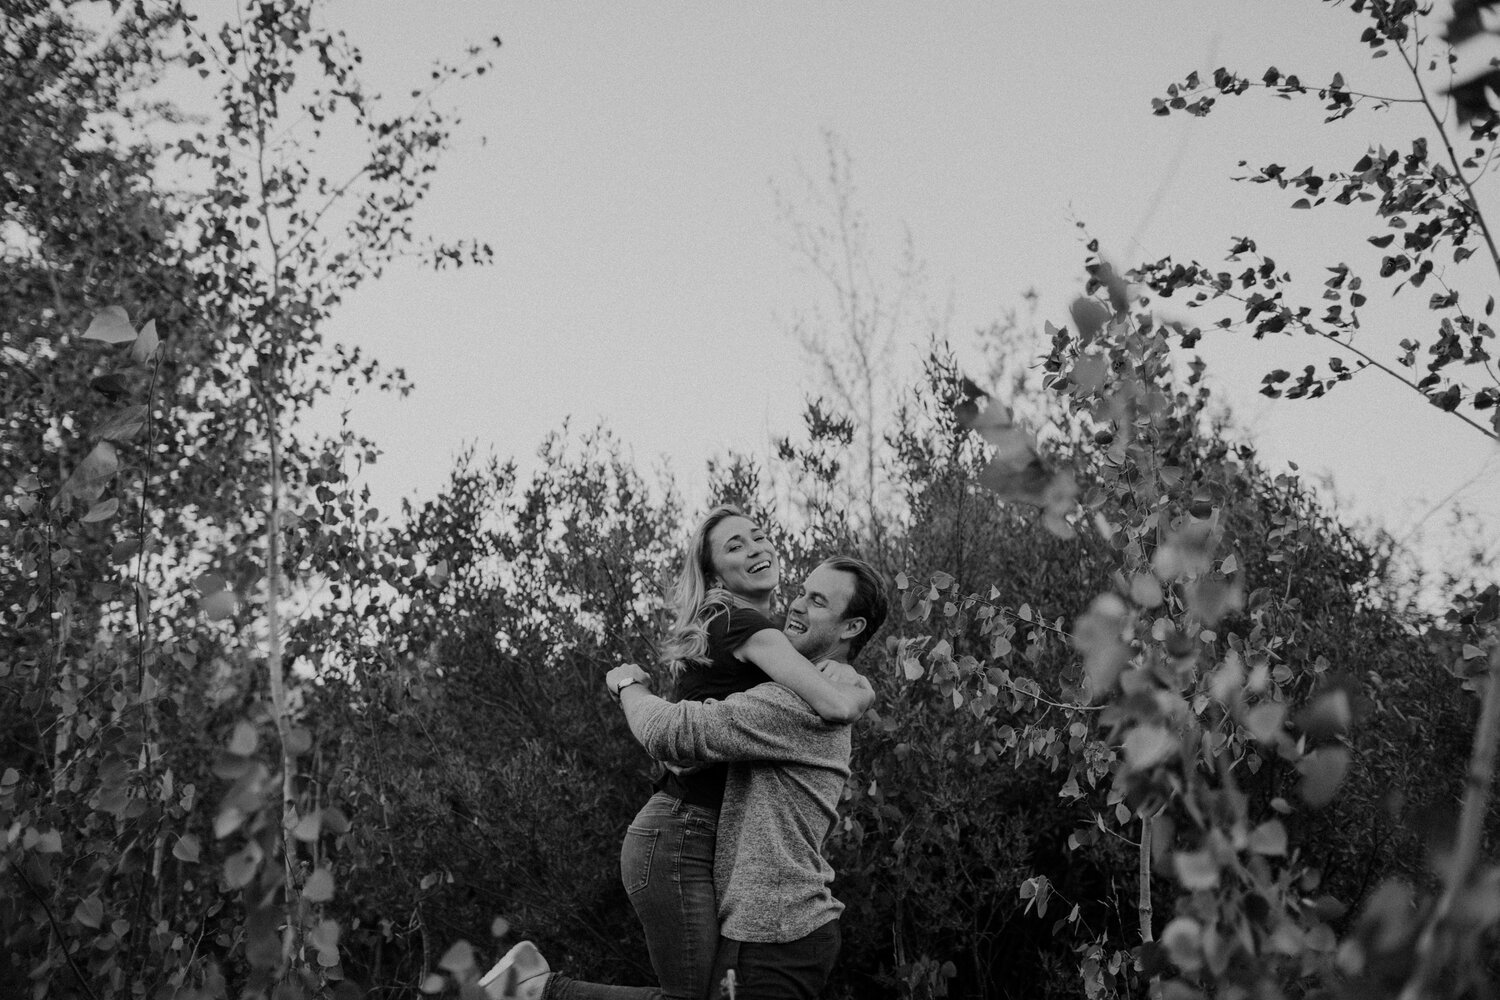 sun-valley-engagement-photos-christinemarie-45.jpg